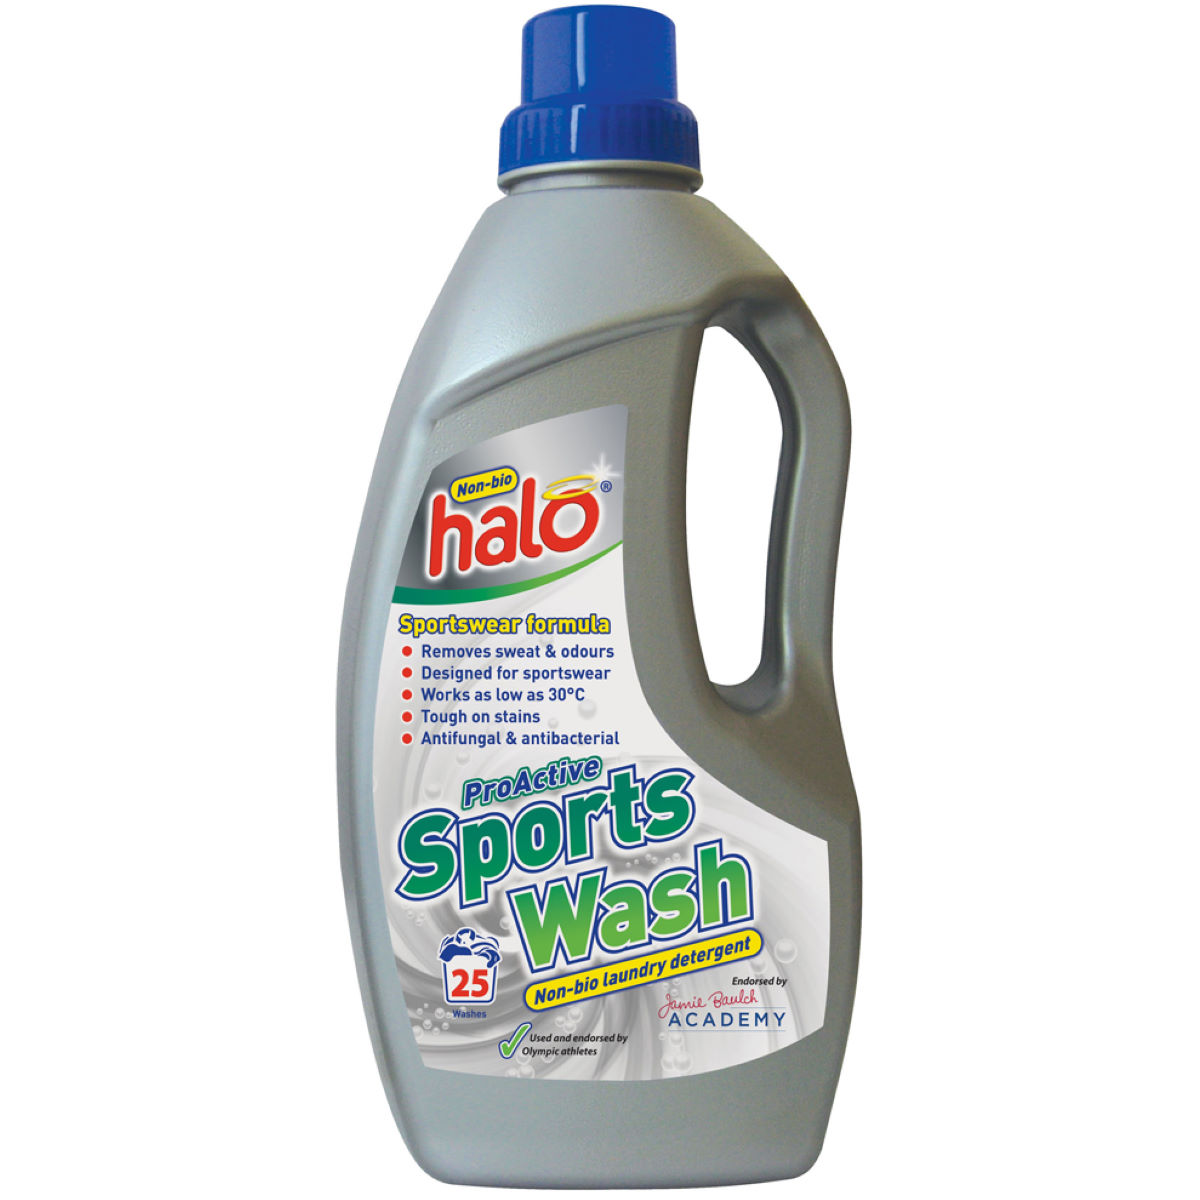 Halo Proactive Sports Wash Laundry Detergent - (1 Litre)